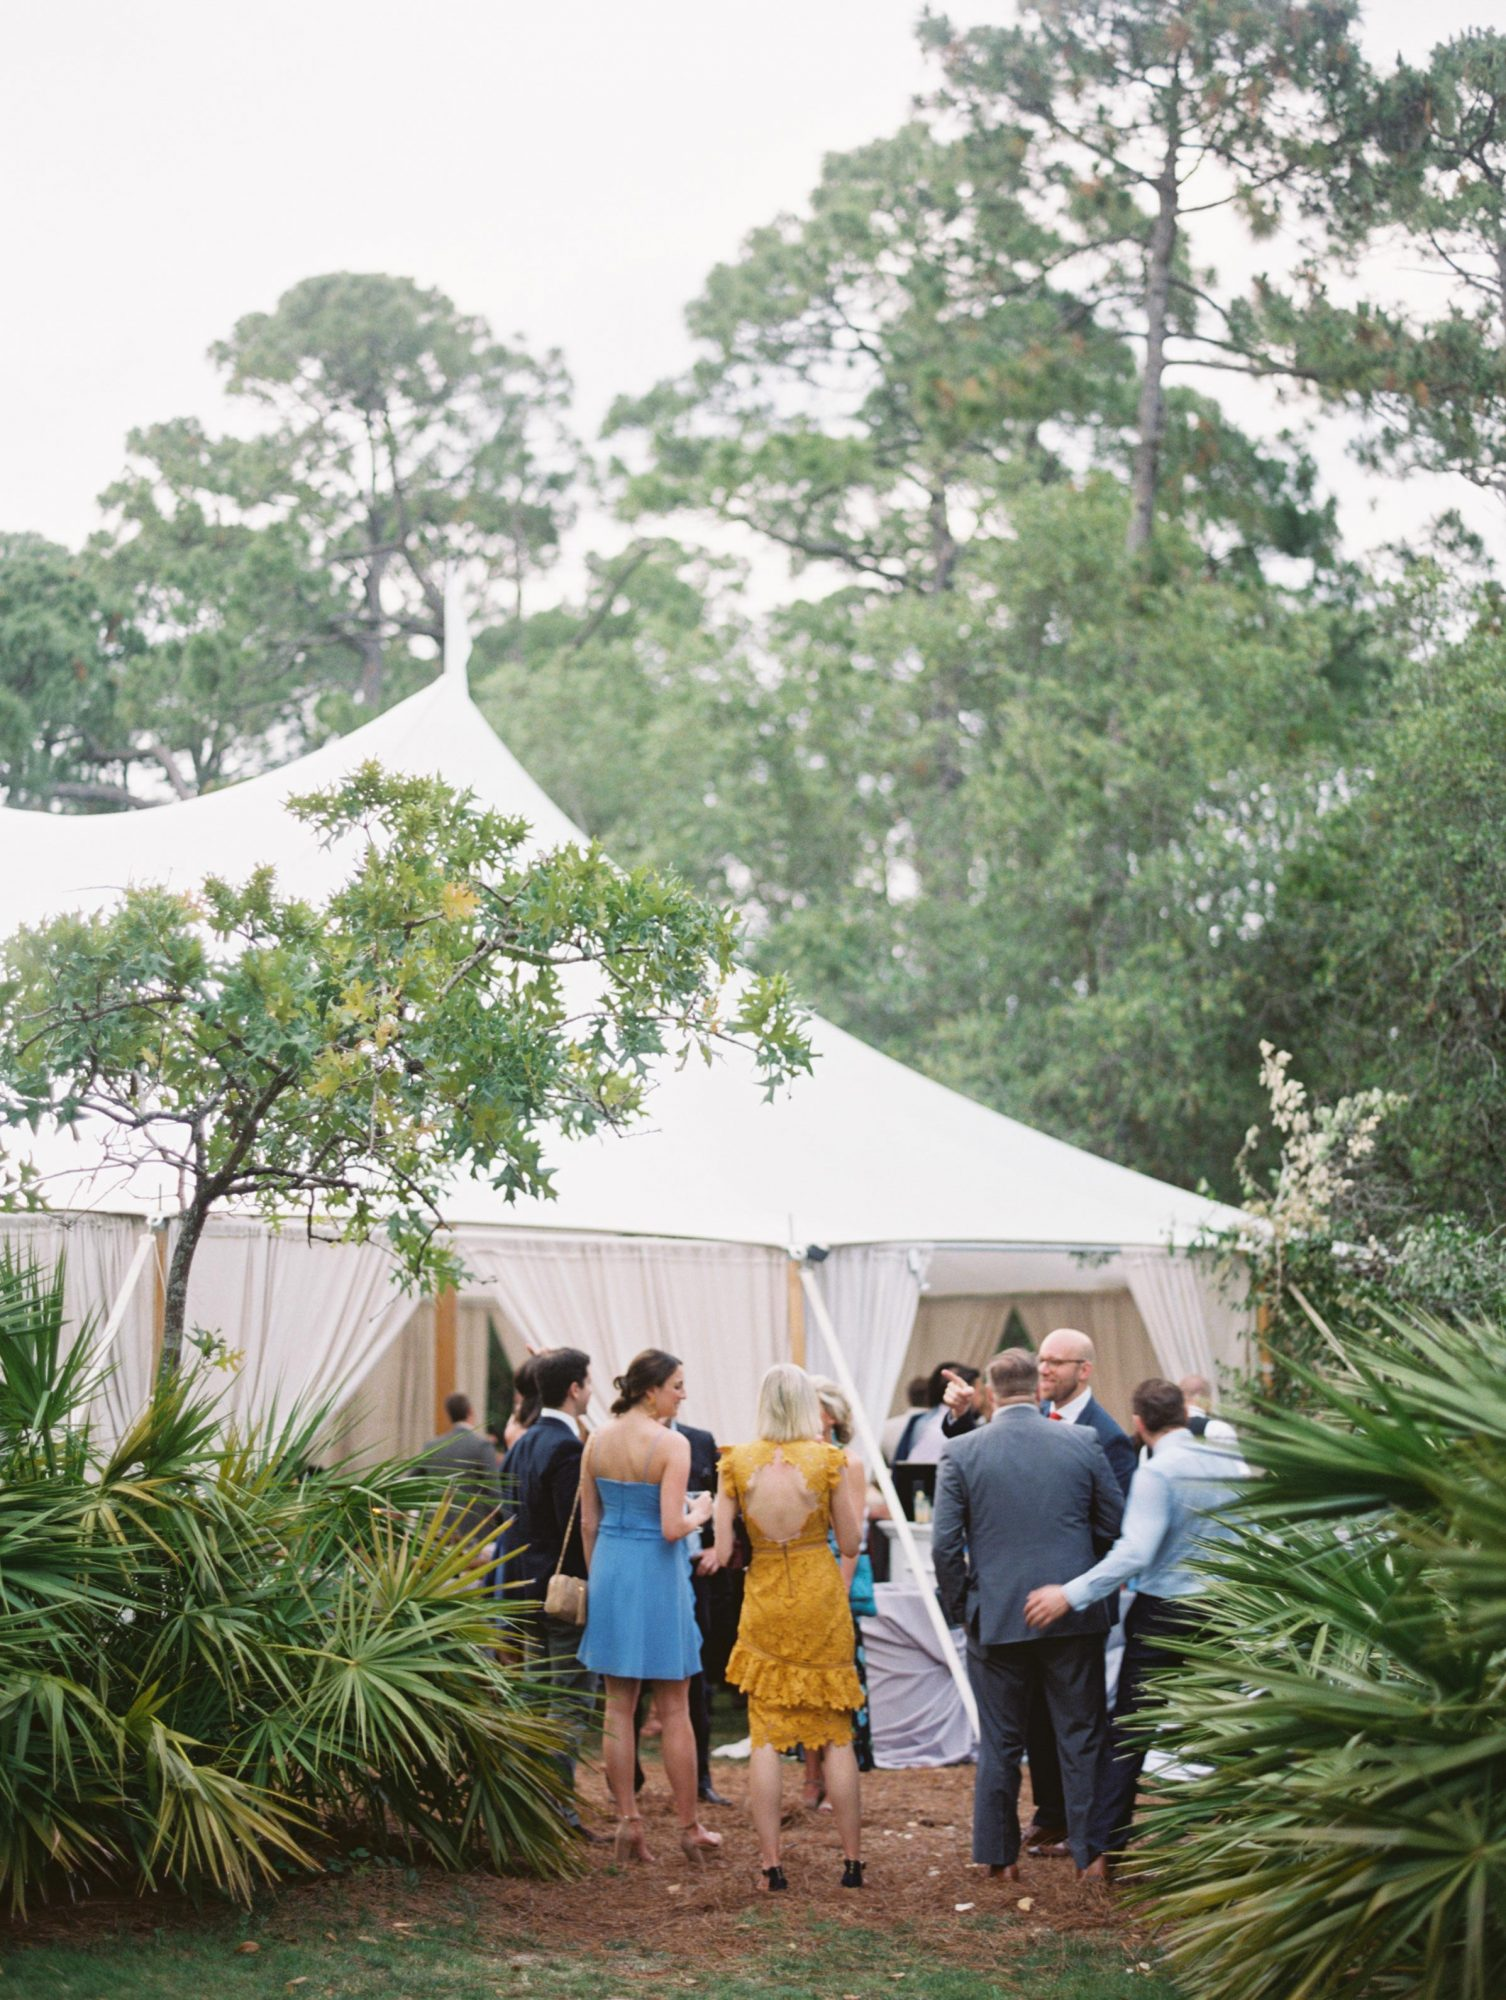 leighton craig wedding tent